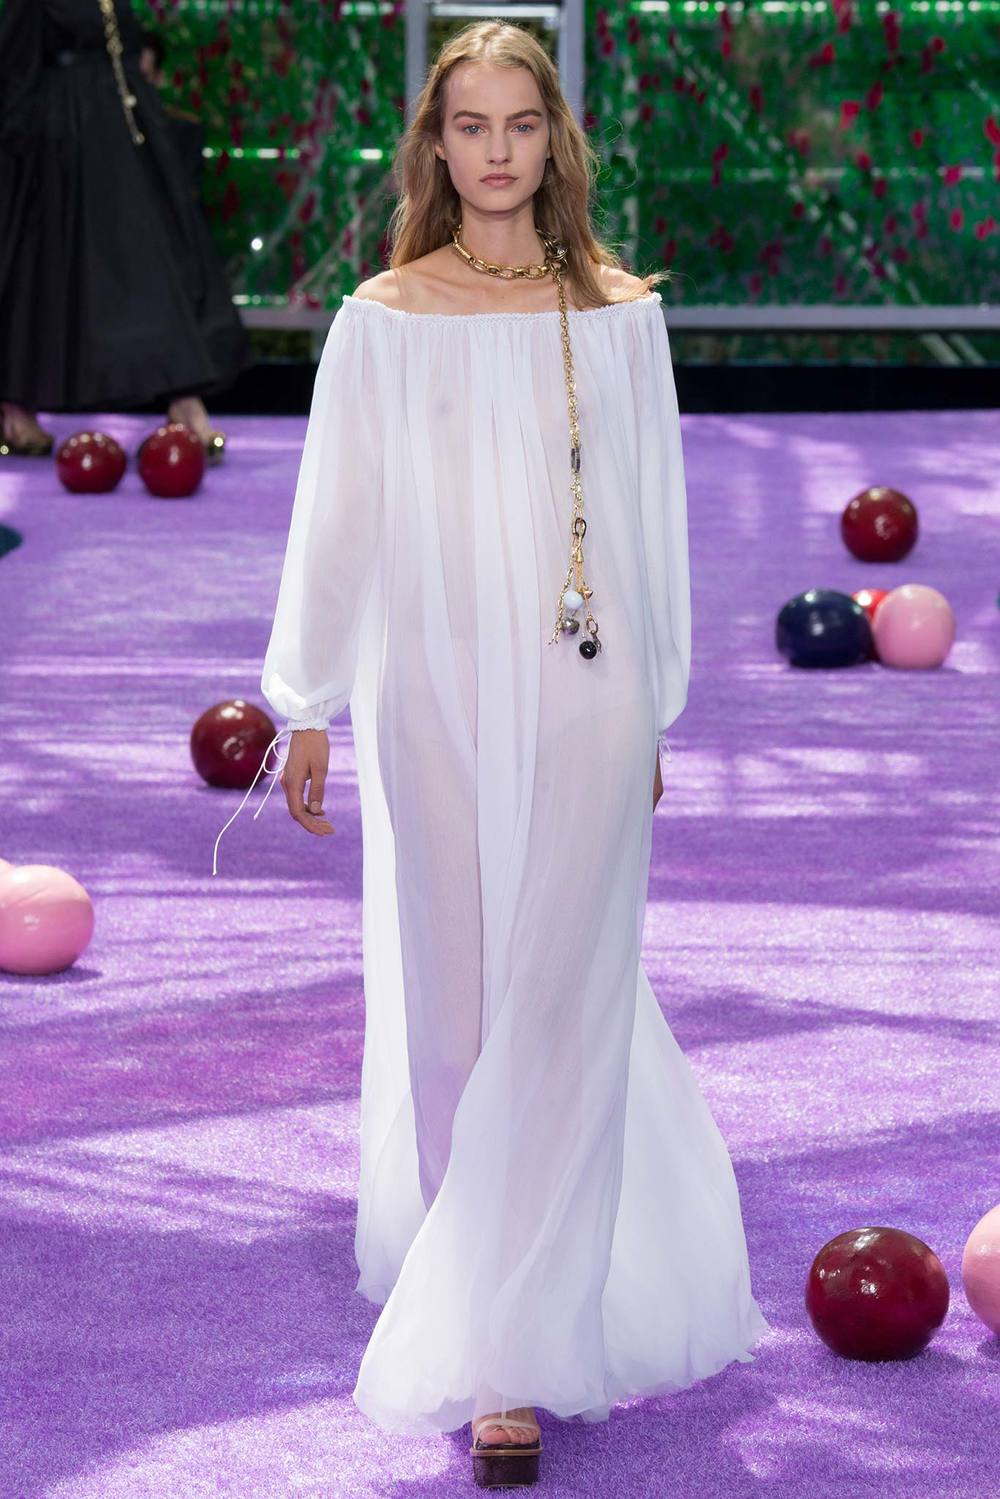 More ethereal goodness, this time from  Christian Dior . Including a necklace that could double as a very chic dog collar and leash.